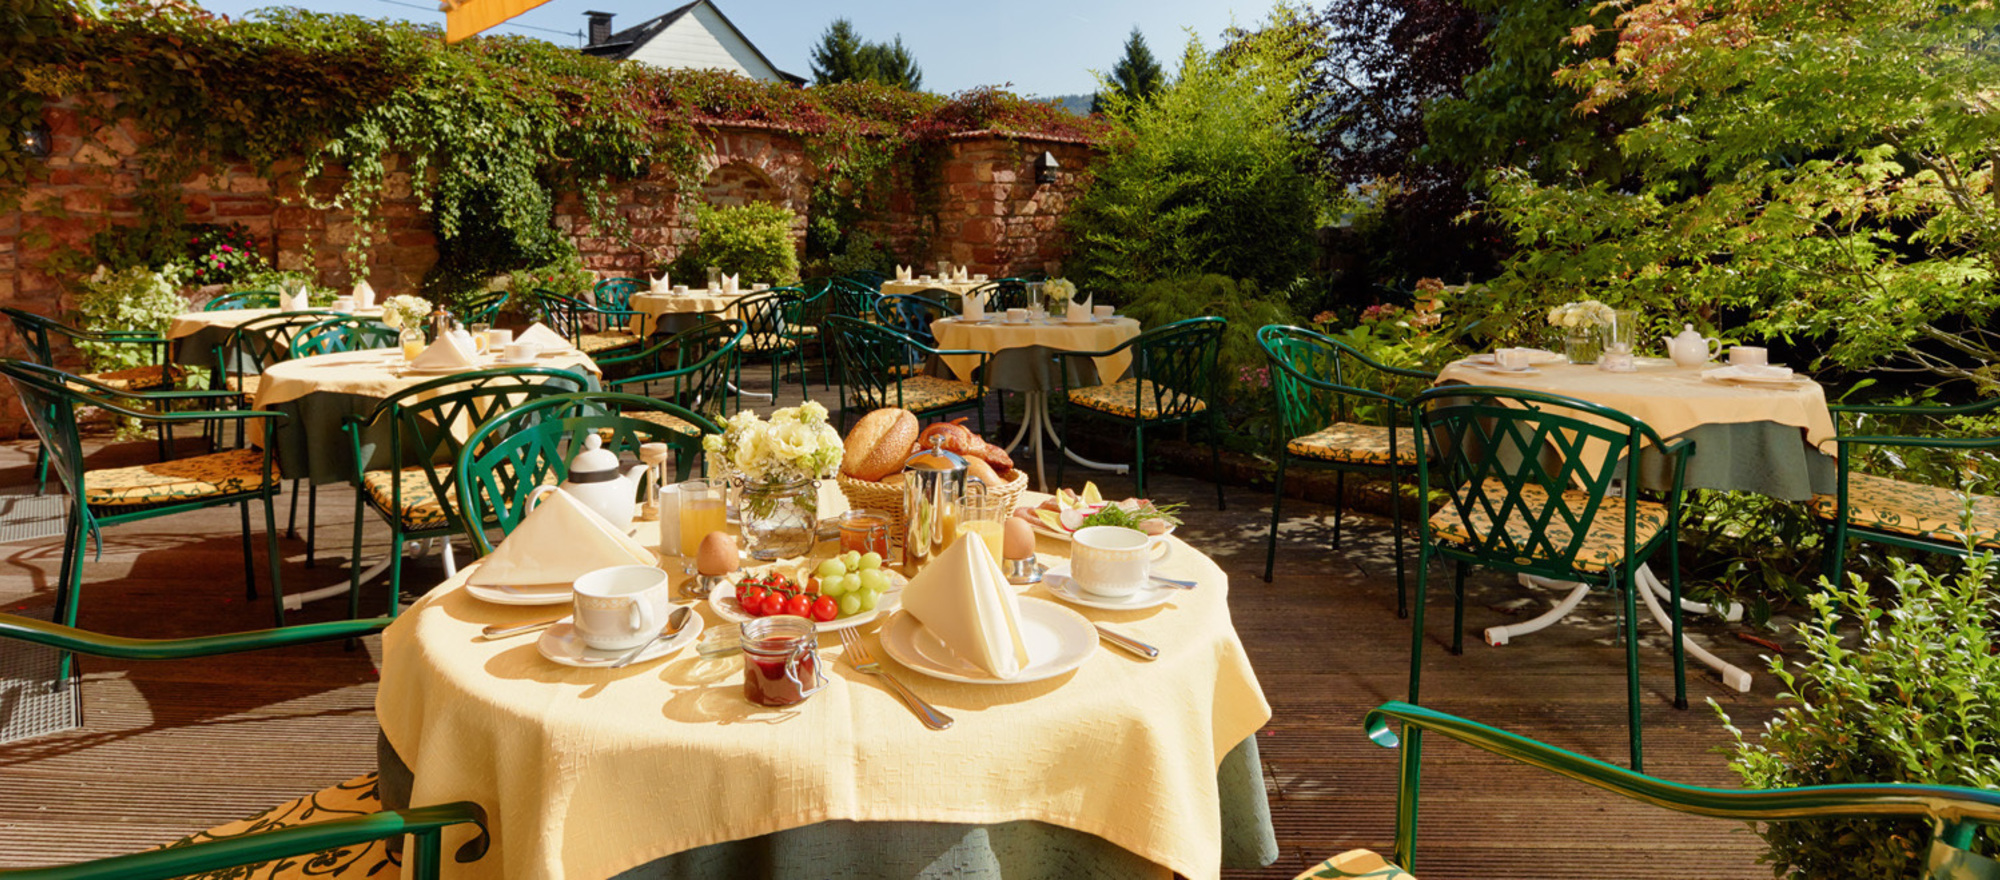 Outdoor breakfast at the terrace of the idyllic hotel garden in the 3-star-superior hotel Ringhotel Boemers Moselland in Alf/Mosel